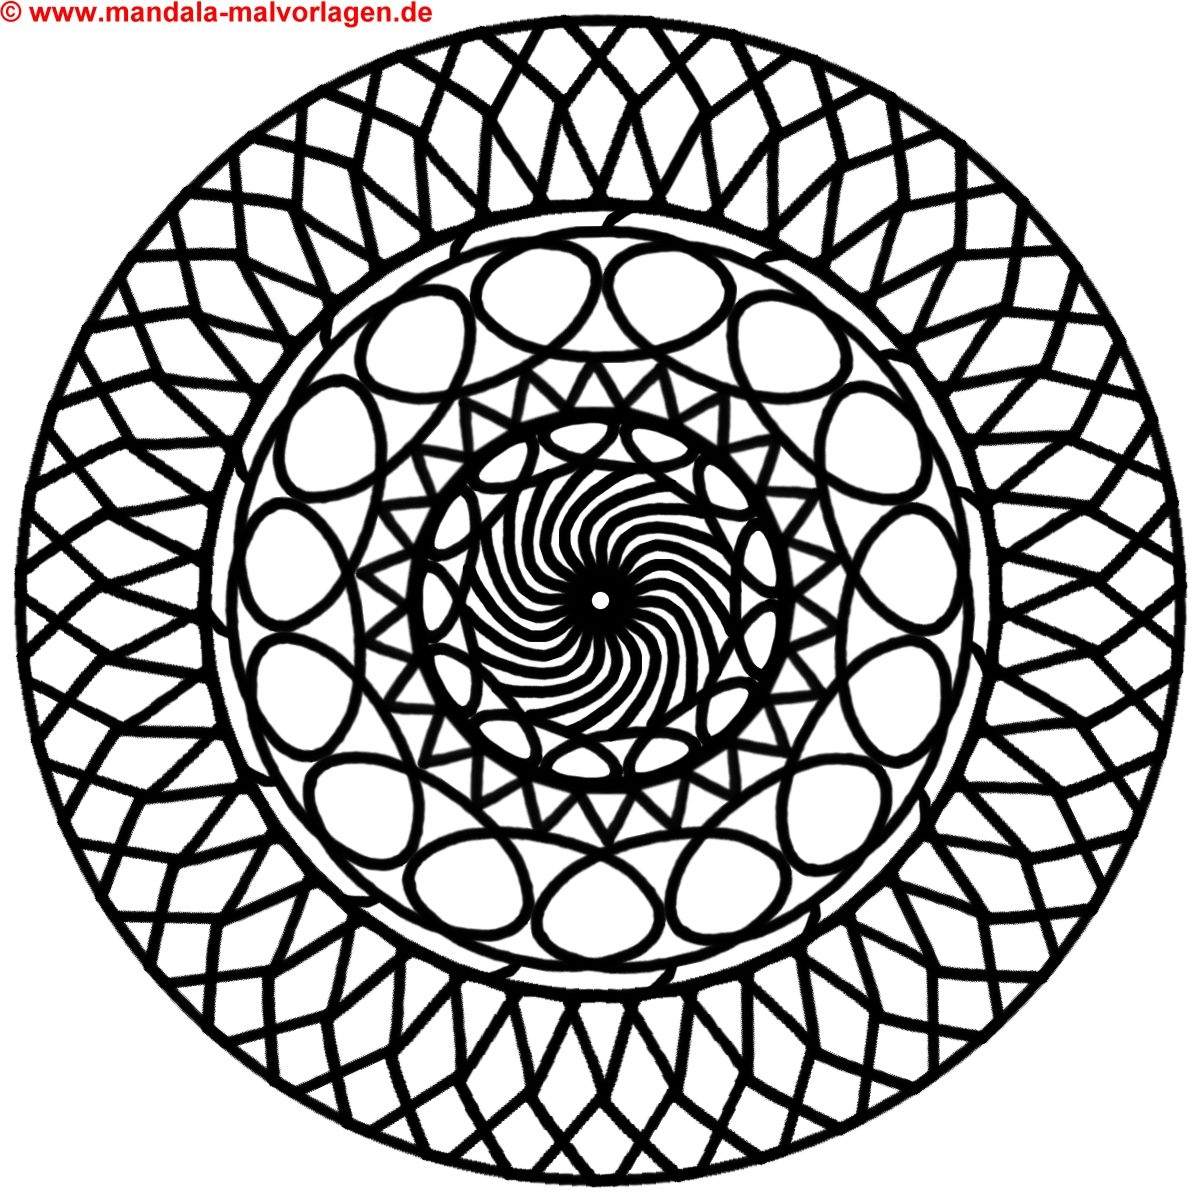 valentines day coloring pages for adults - malvorlagen gratis